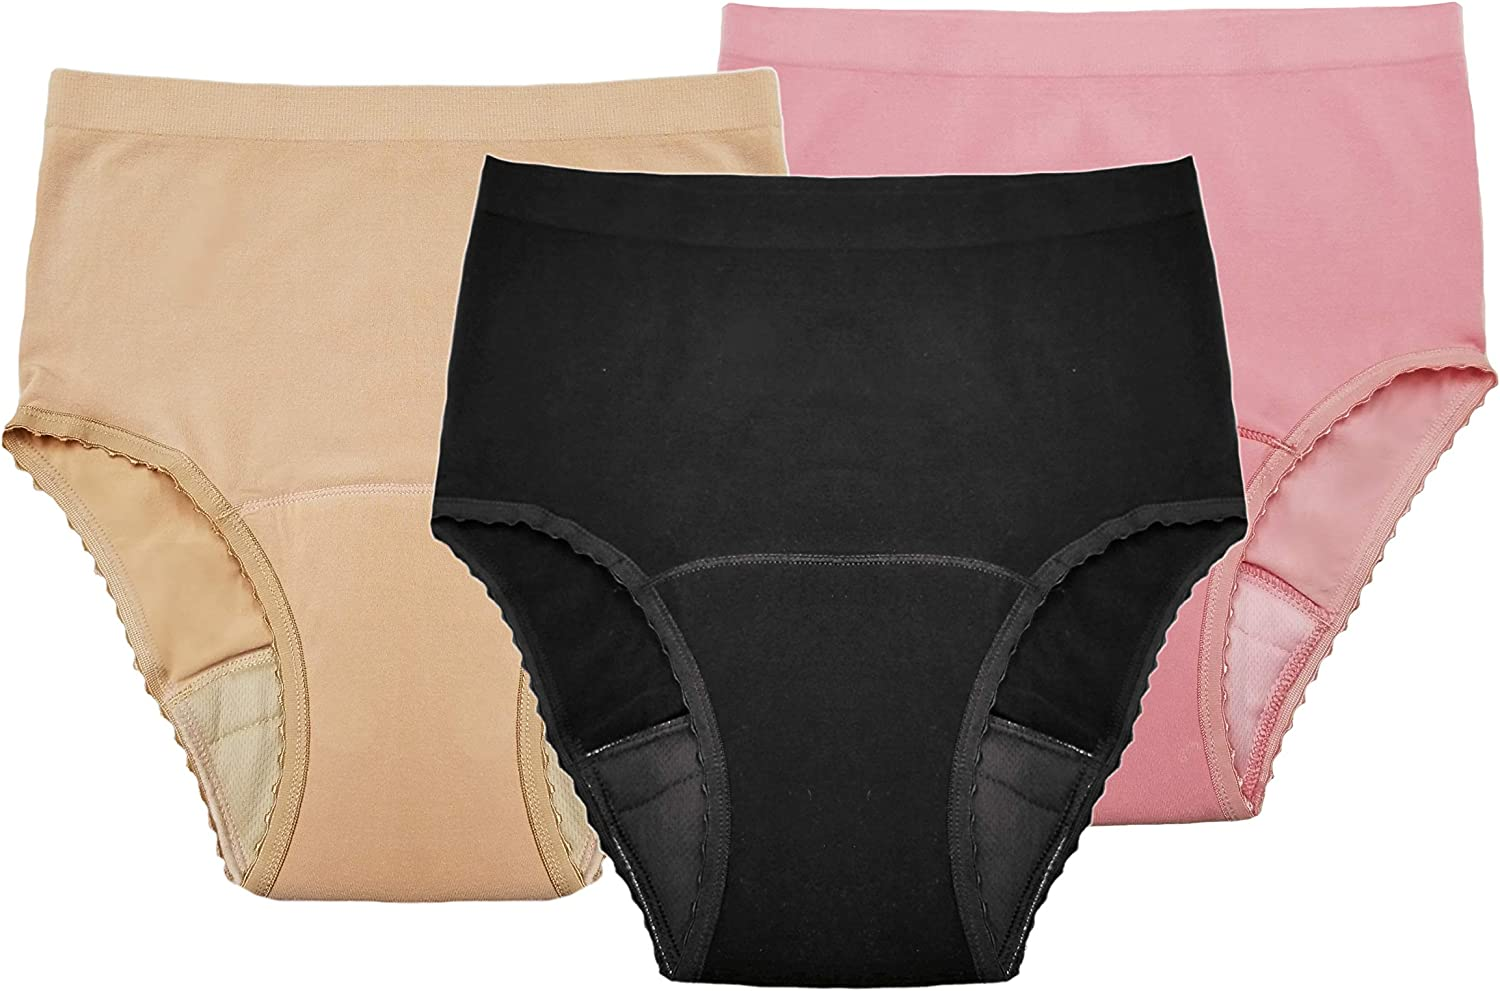 Comfort Finds Seamless NEW Incontinence Panty Inco - Womens Reusable New mail order